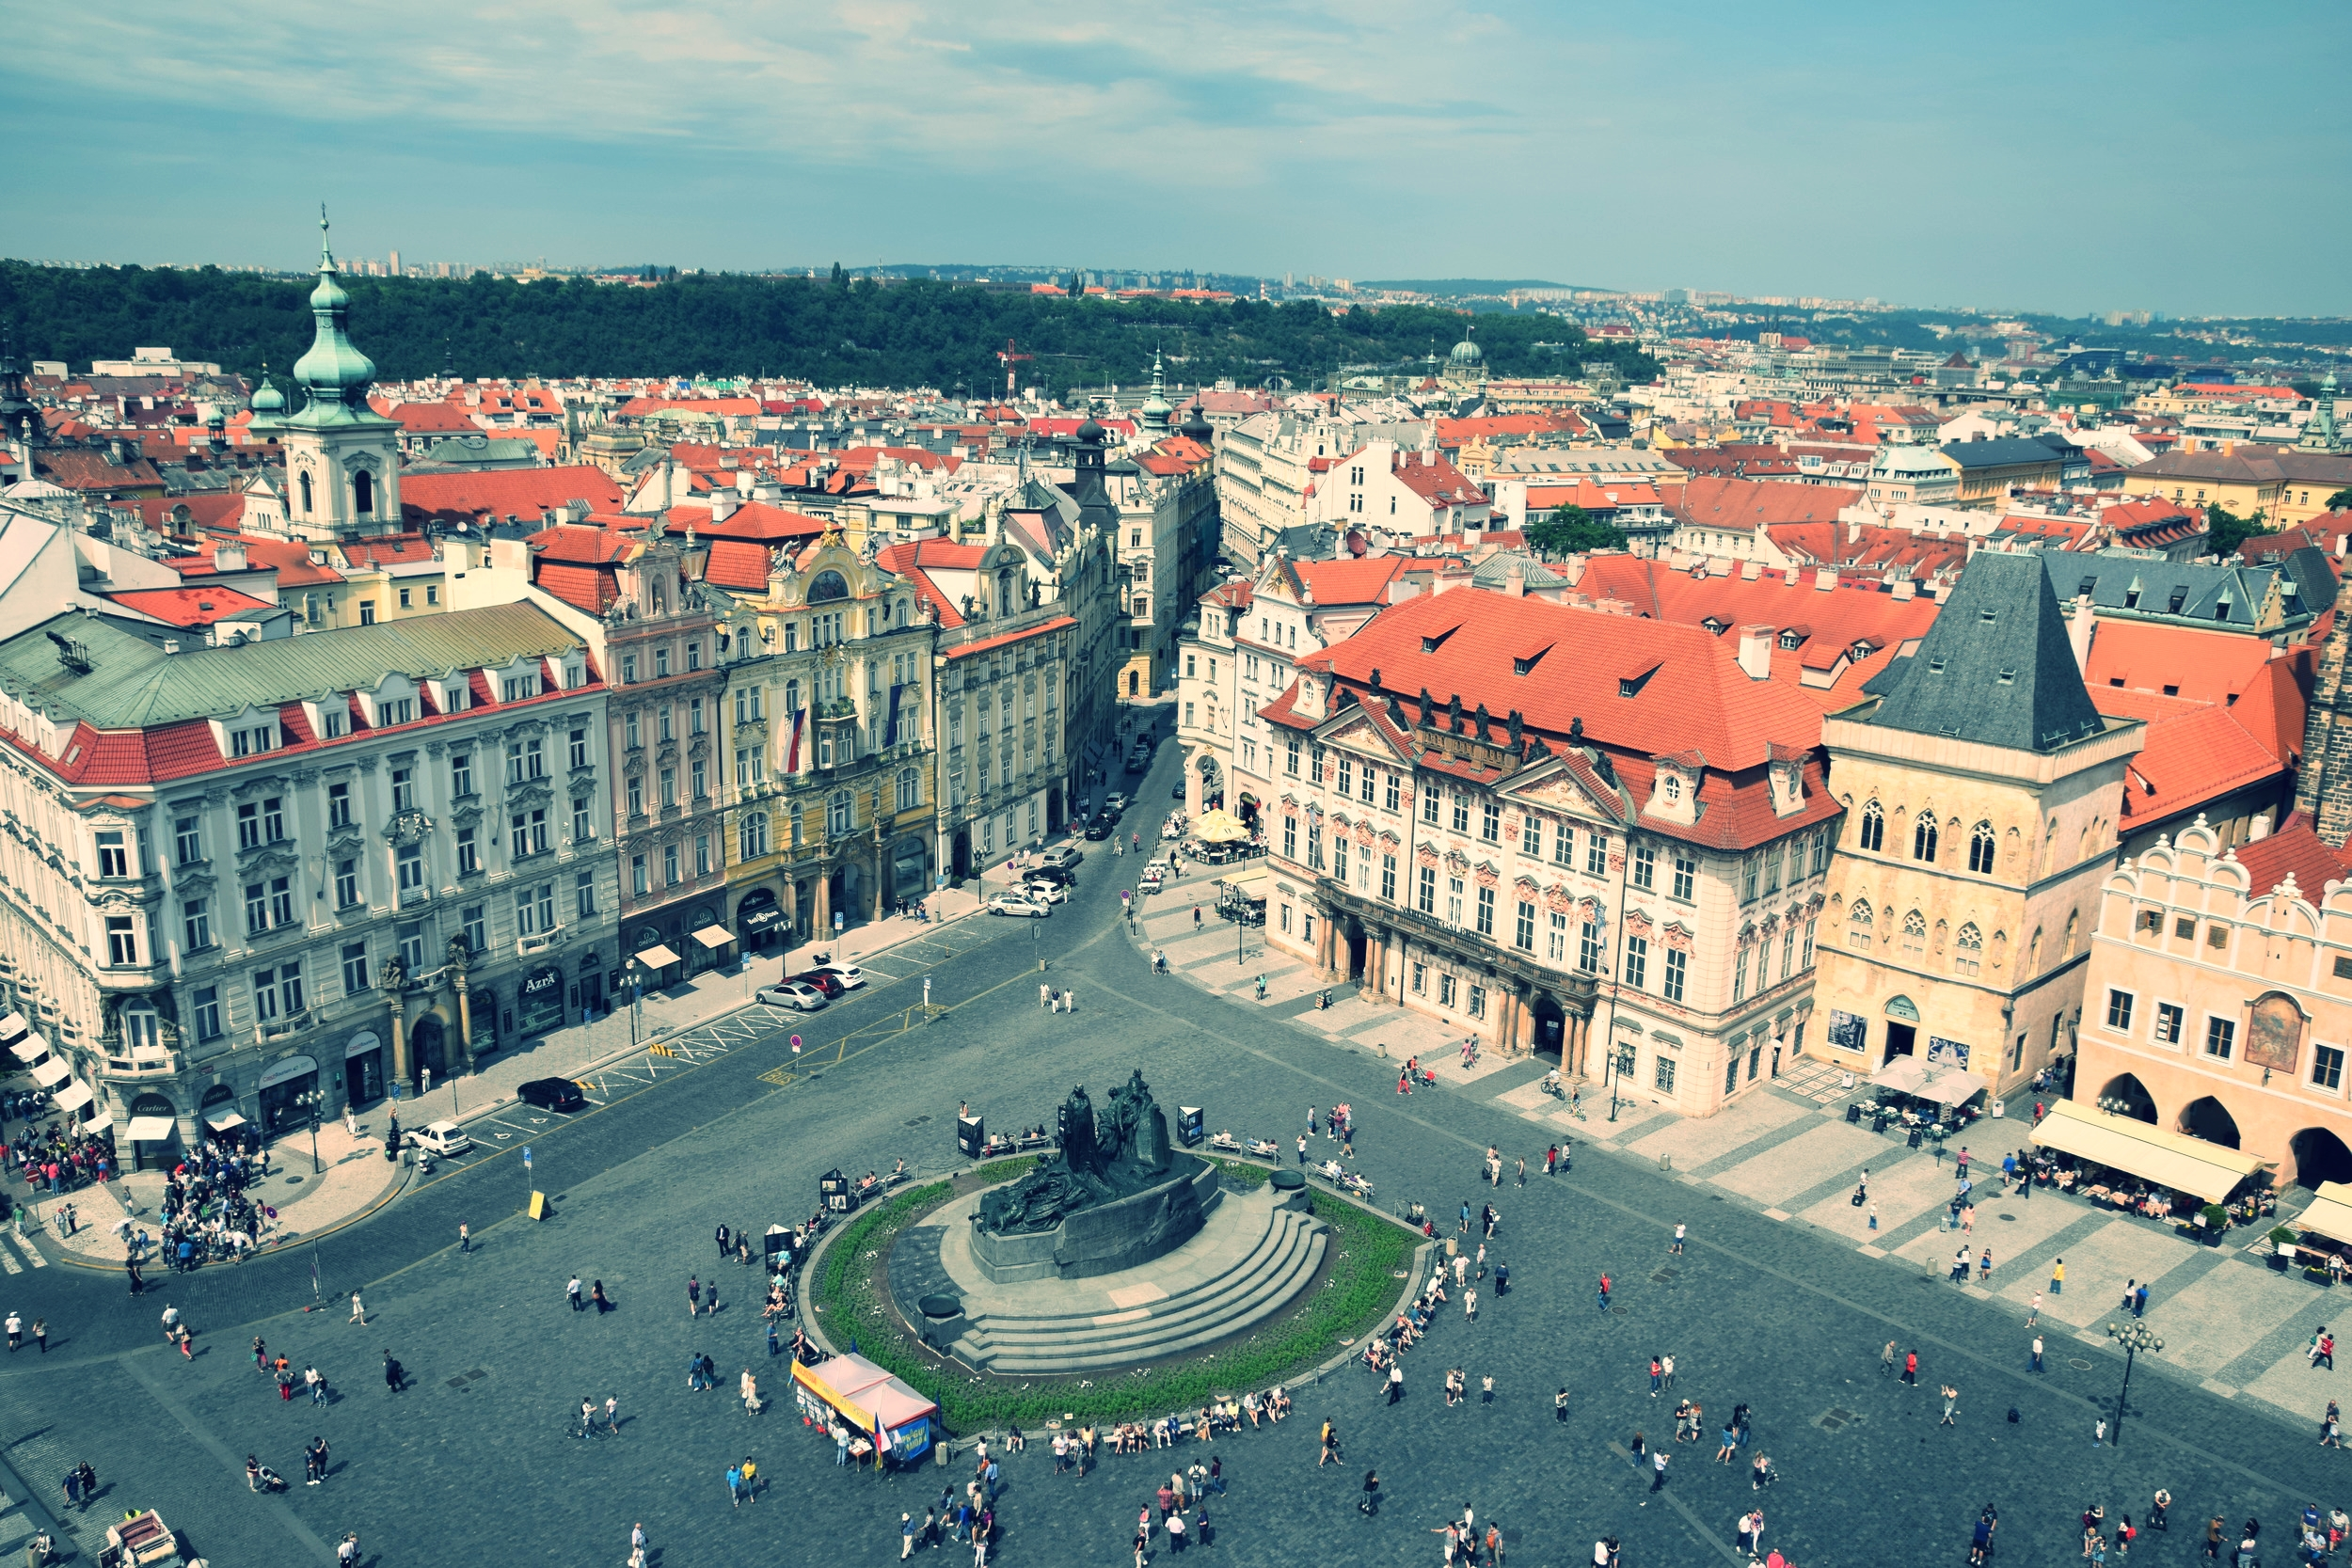 Old town square in Prague. THe view is From the top of theastronomical clock tower.